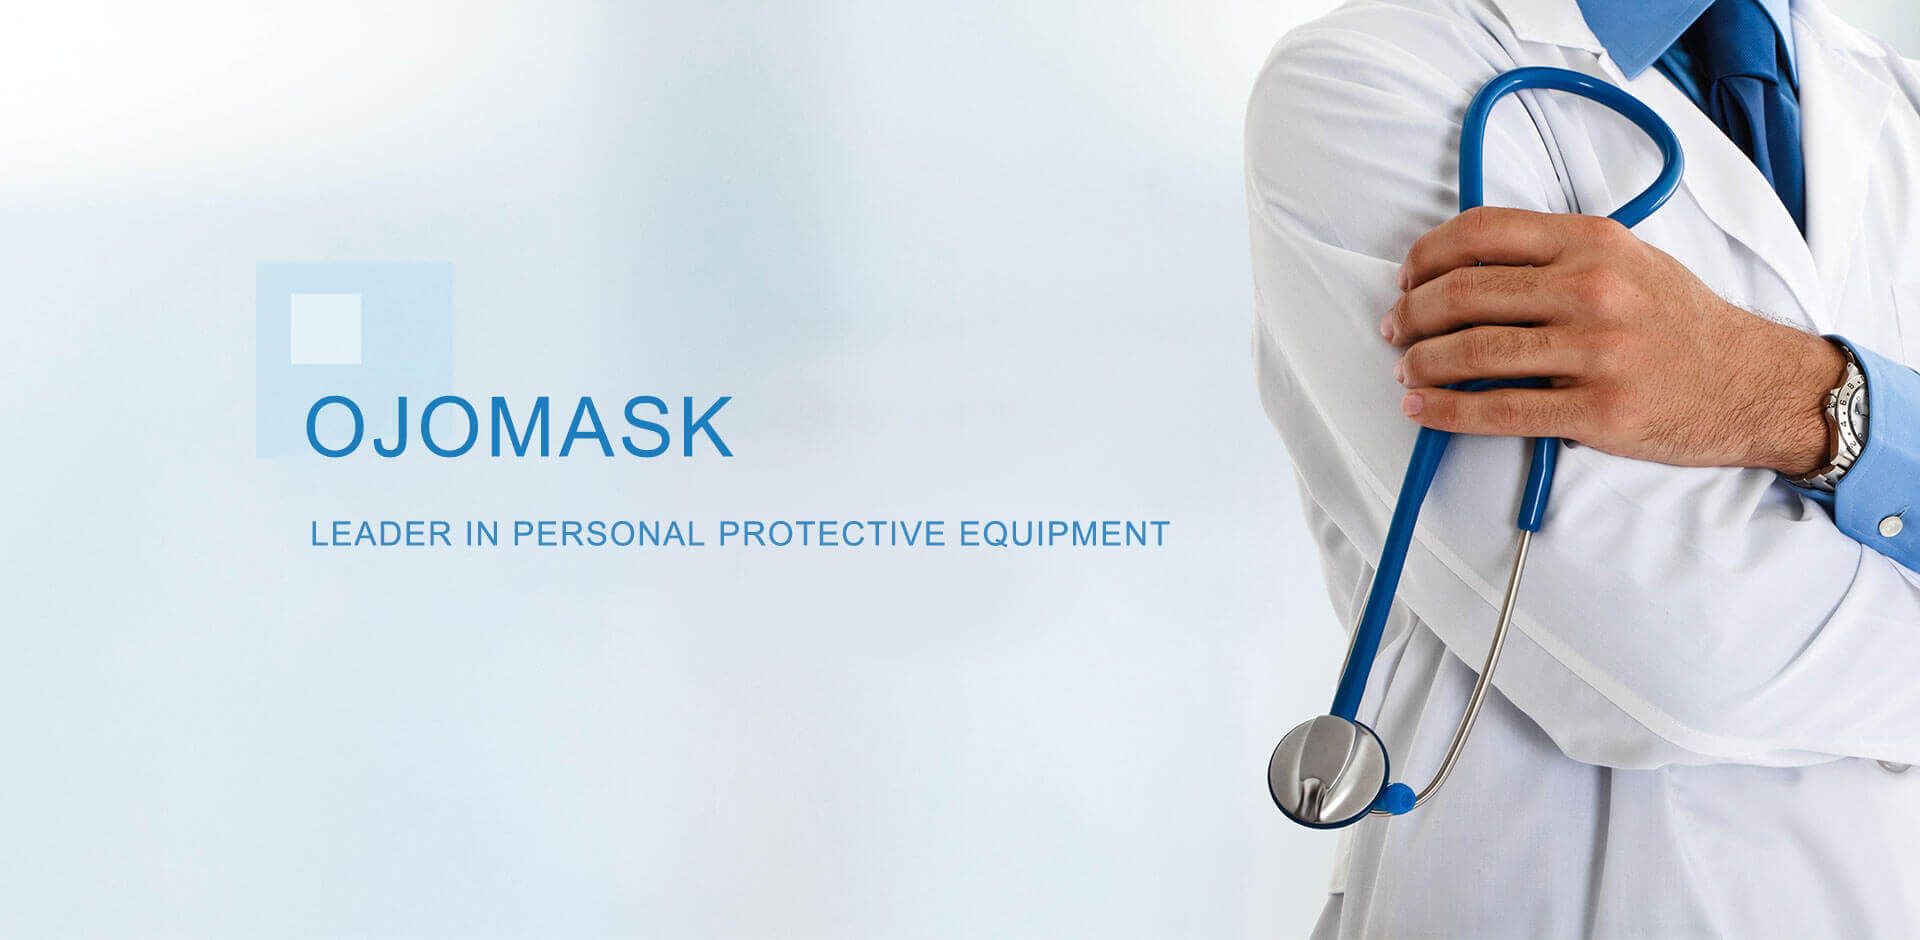 Leader in personal protective equipment